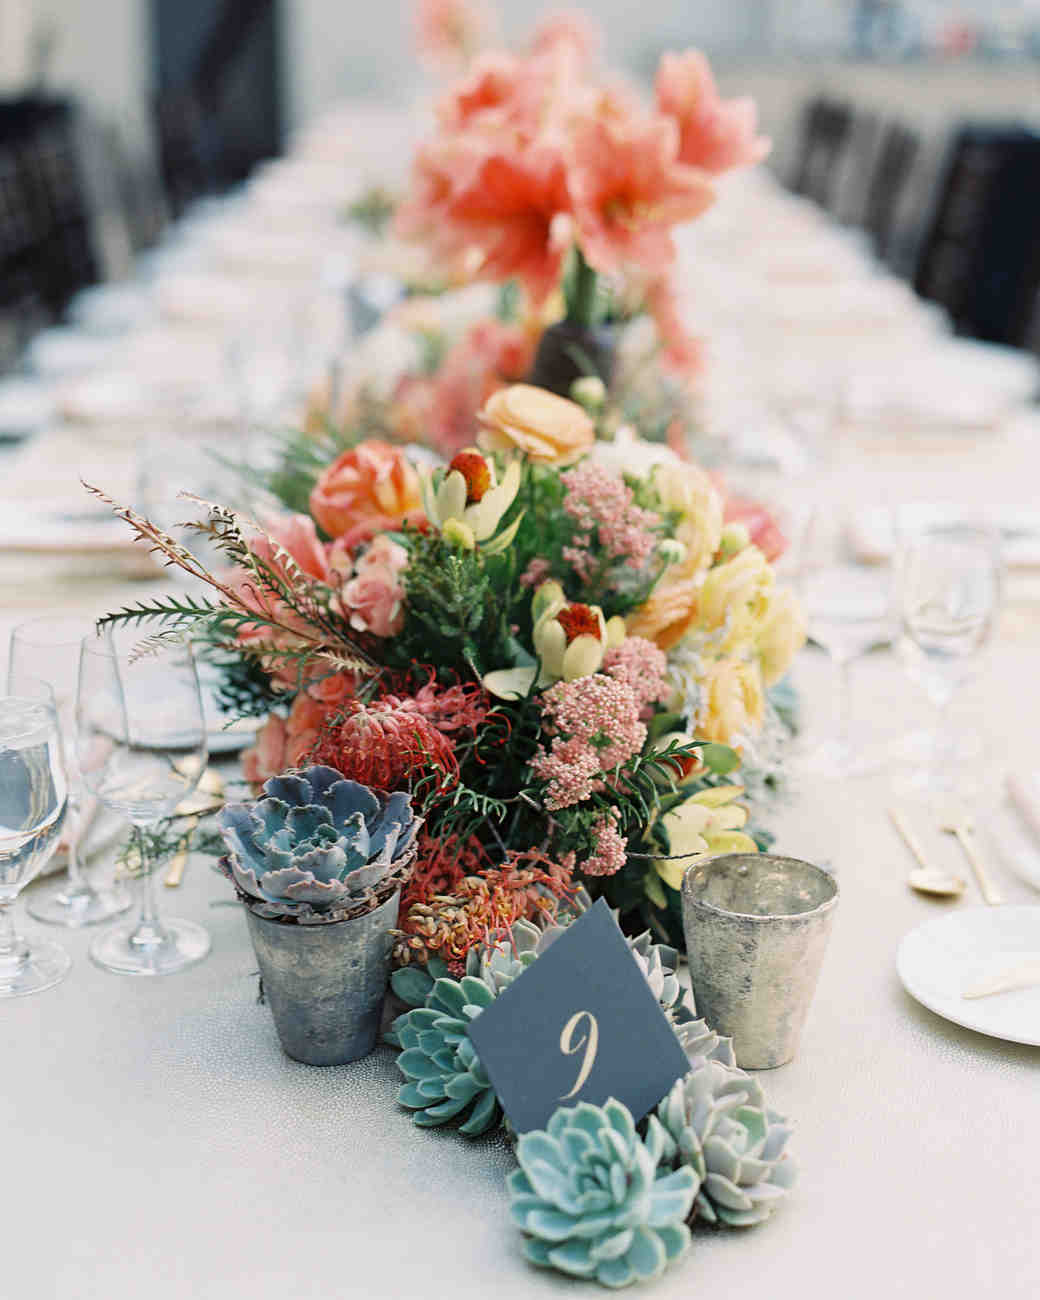 Flowers For Wedding Table Centerpieces: 36 Ideas For Using Succulents At Your Wedding